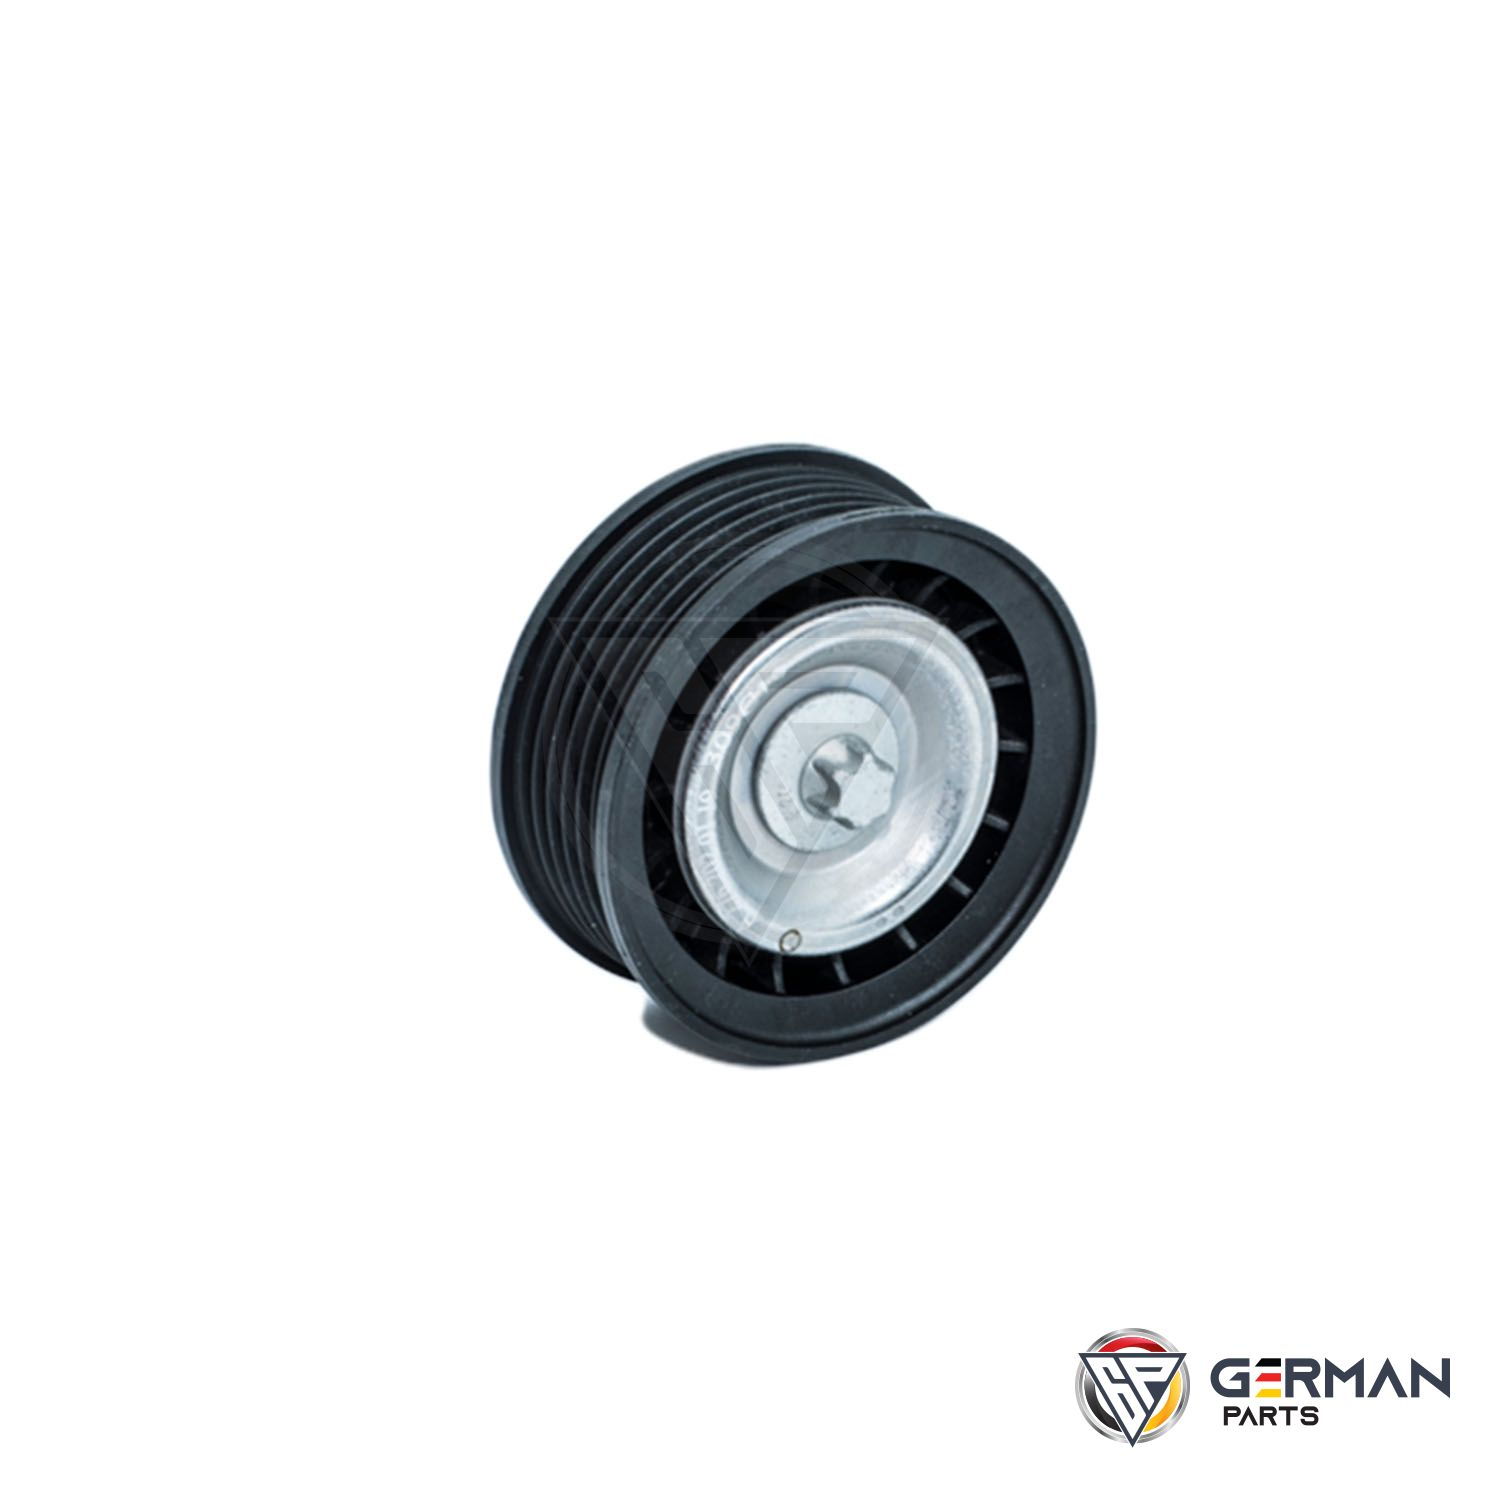 Buy Mercedes Benz Idle Pulley 2762020119 - German Parts